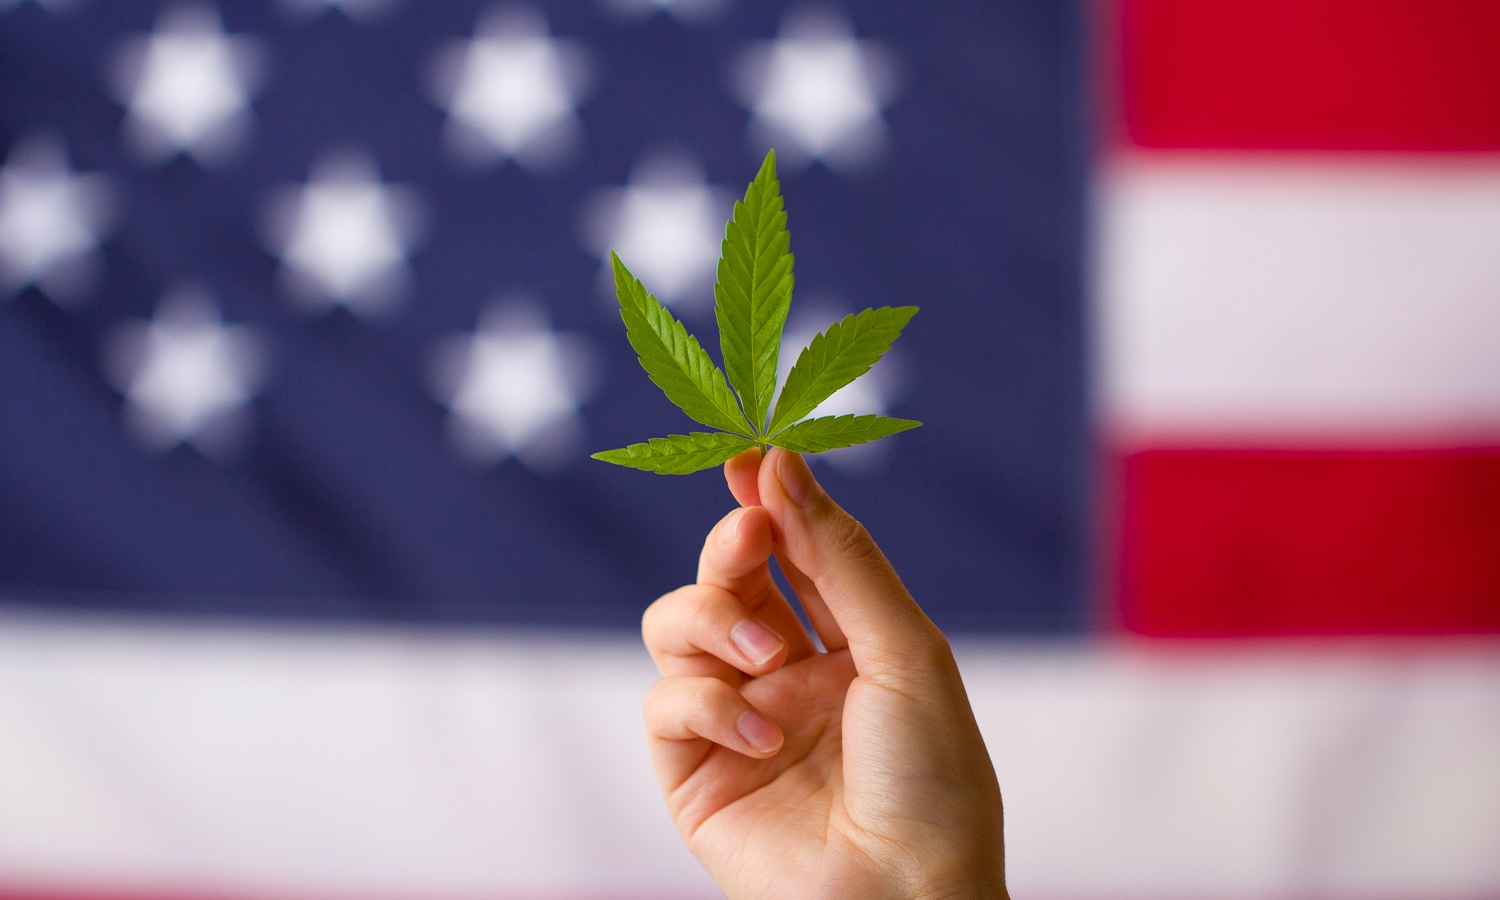 What the 2020 Election Results Mean for Marijuana in 2021